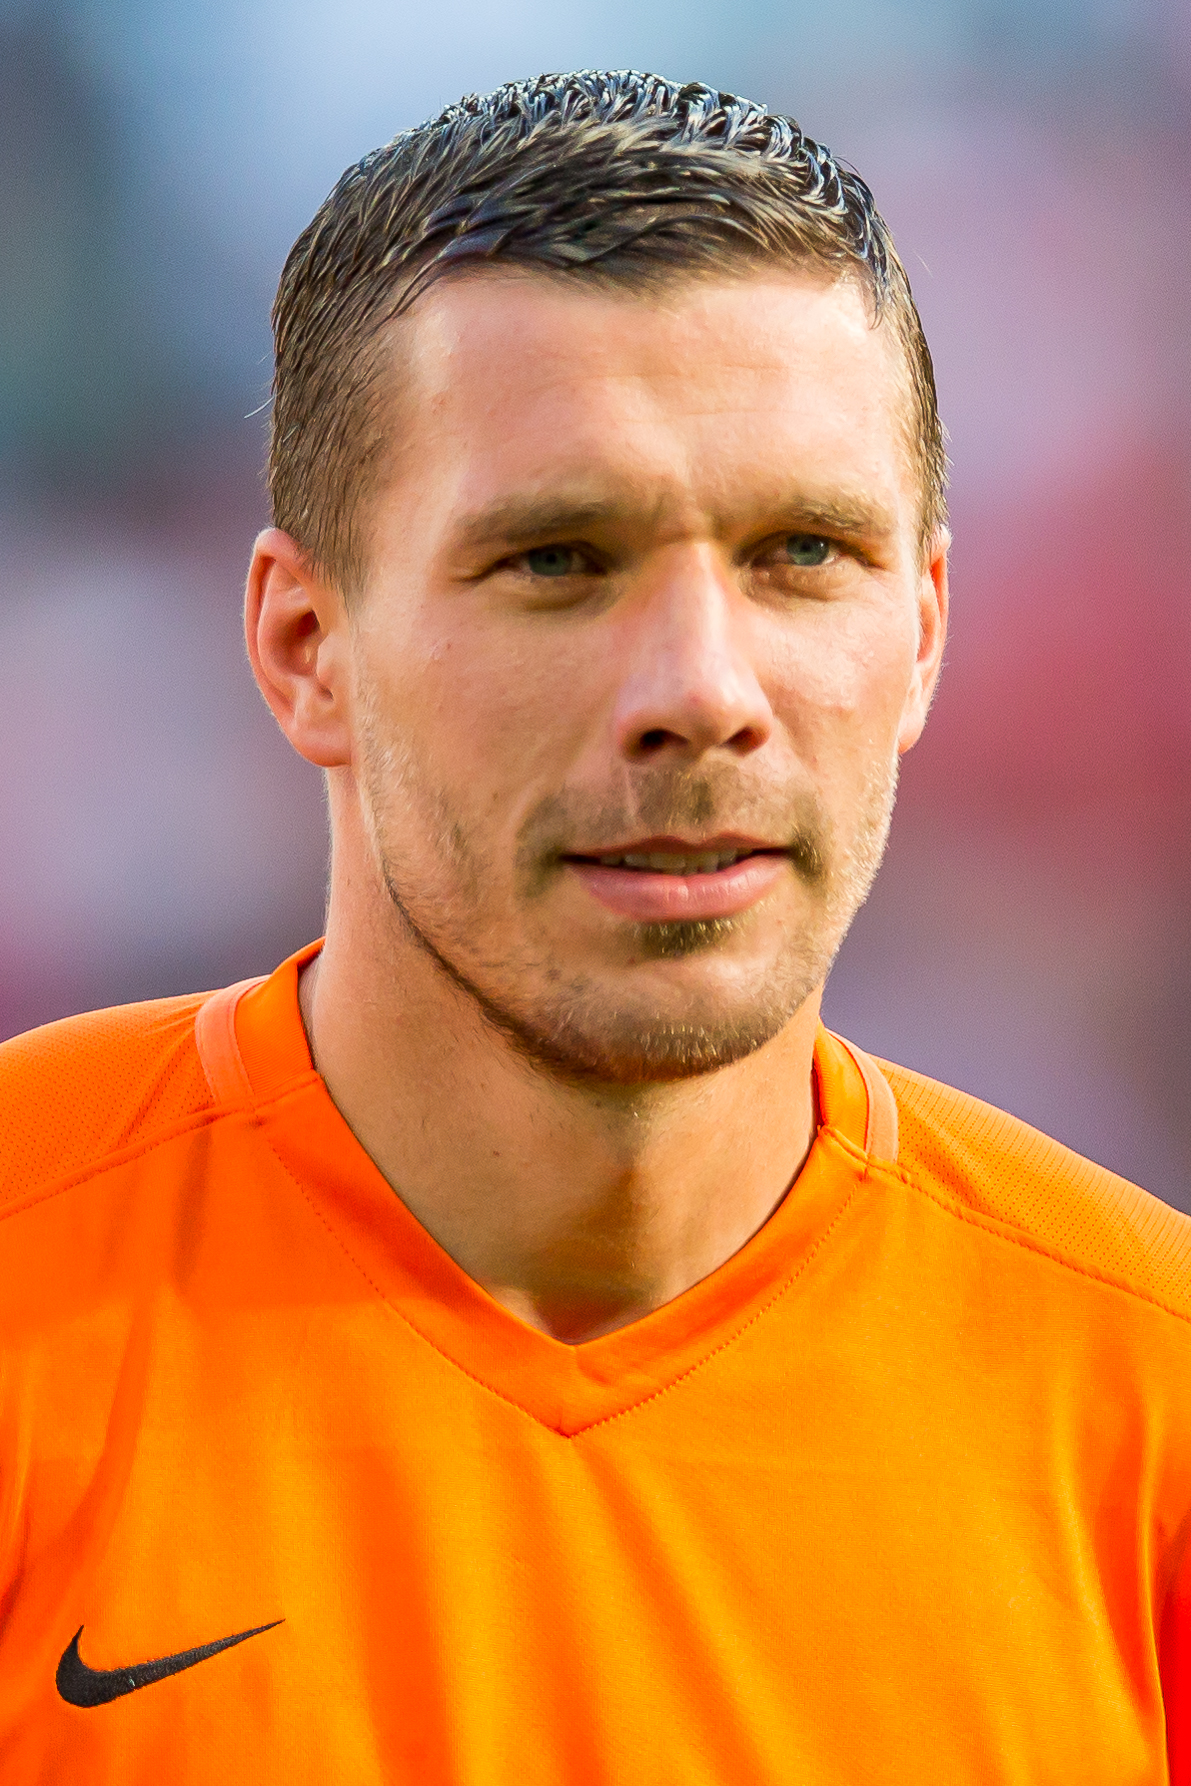 The 33-year old son of father Waldemar Podolski and mother Krystyna Podolska Lukas Podolski in 2018 photo. Lukas Podolski earned a 3 million dollar salary - leaving the net worth at 49 million in 2018